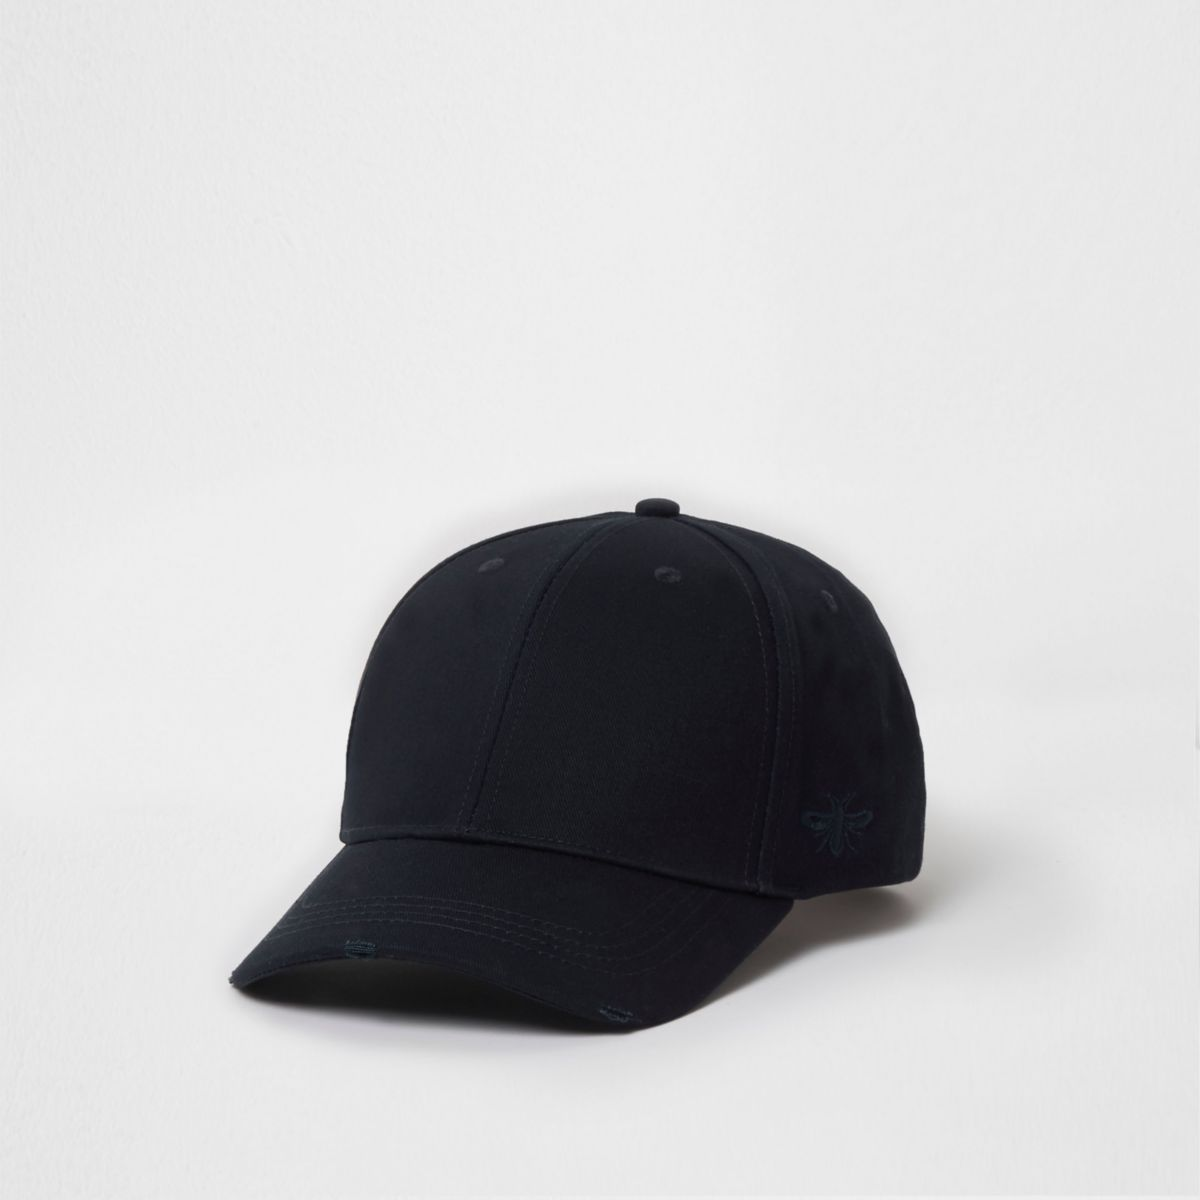 Navy wasp embroidered baseball cap